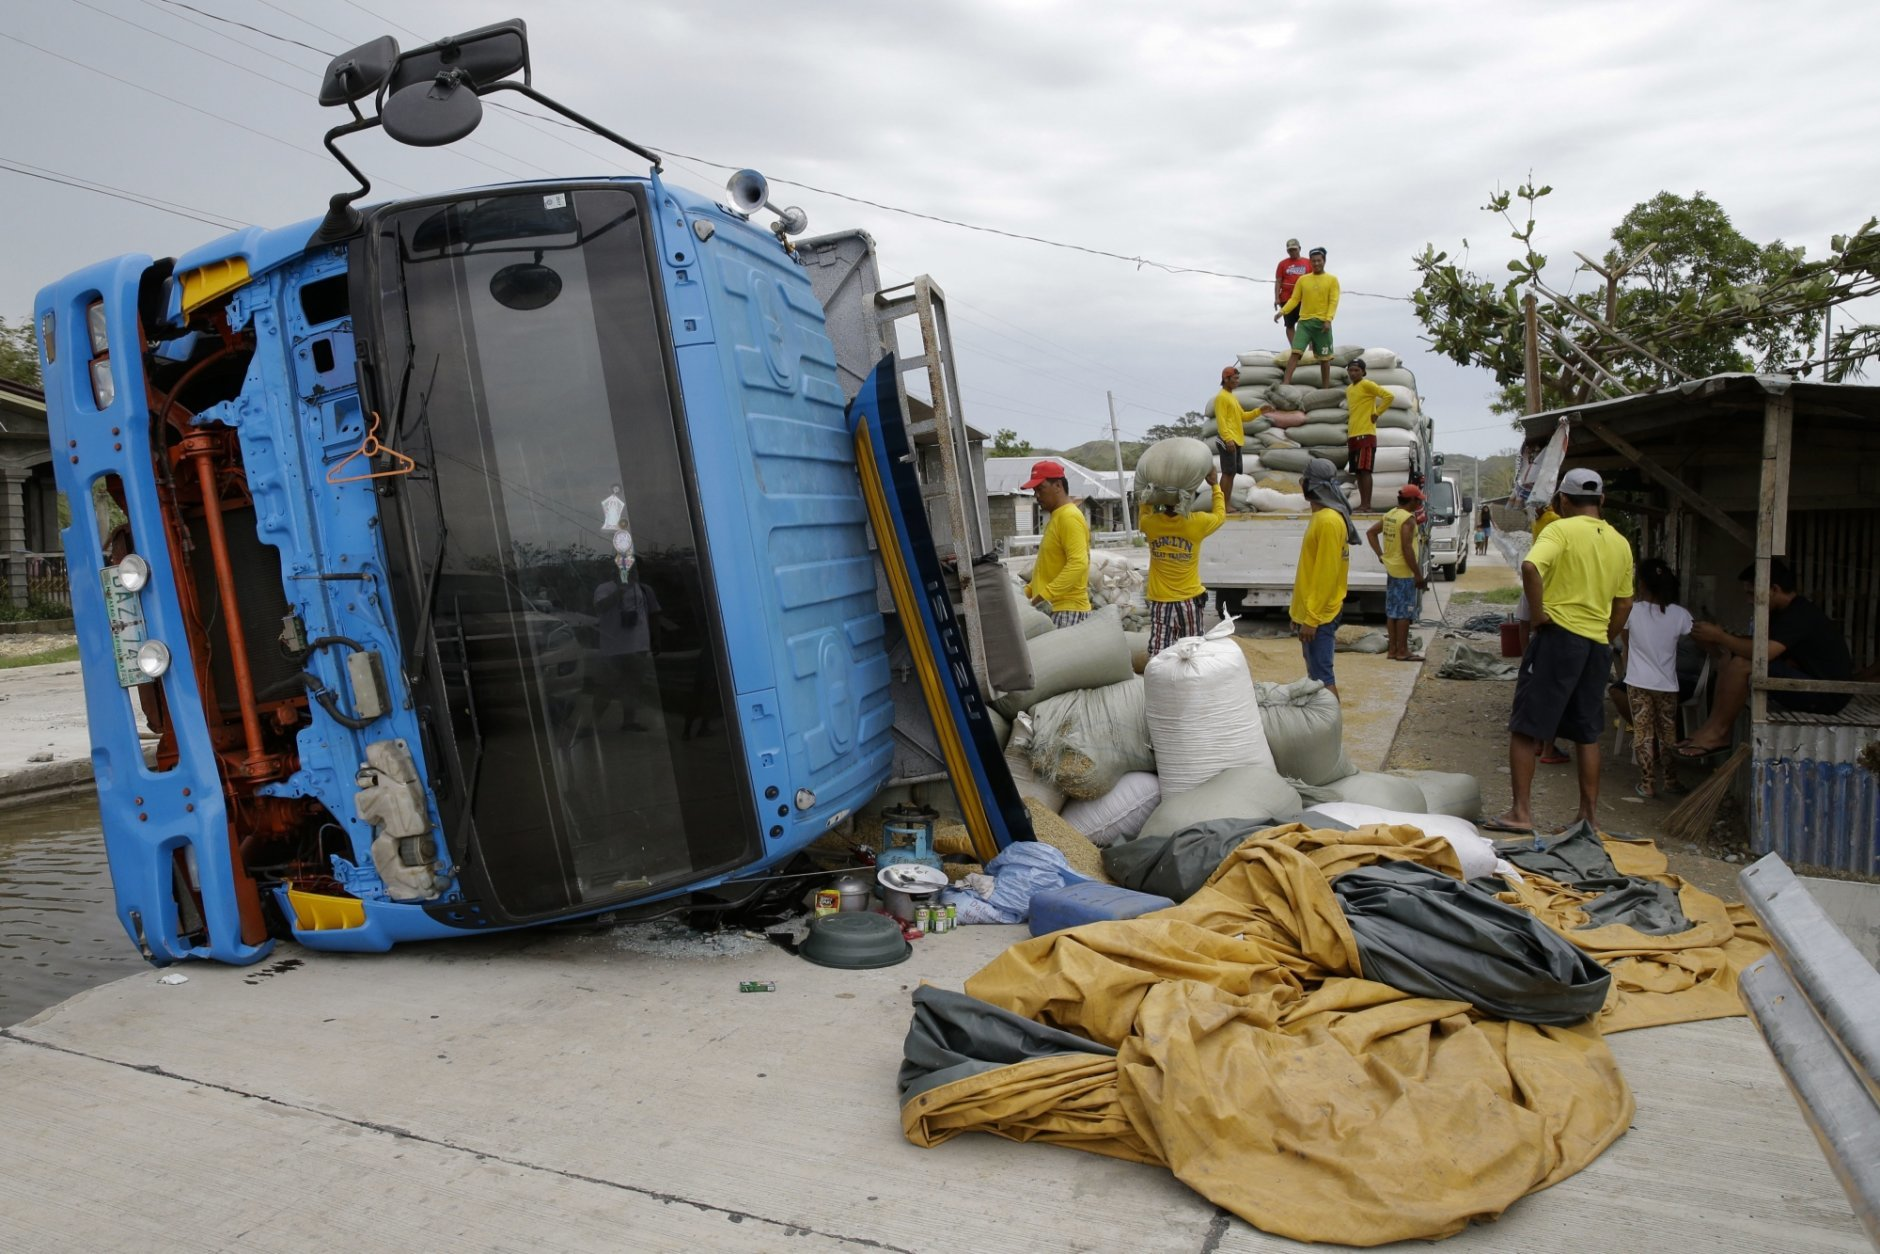 Workers carry sacks of grains from a toppled truck in Cagayan province, northeastern Philippines on Sunday, Sept. 16, 2018. Driver Alvin Buelta said his truck fell after he failed to see the road repairs due to the high floods caused by Typhoon Mangkhut on Friday night. The typhoon roared toward densely populated Hong Kong and southern China on Sunday after ravaging across the northern Philippines with ferocious winds and heavy rain causing landslides and collapsed houses. (AP Photo/Aaron Favila)